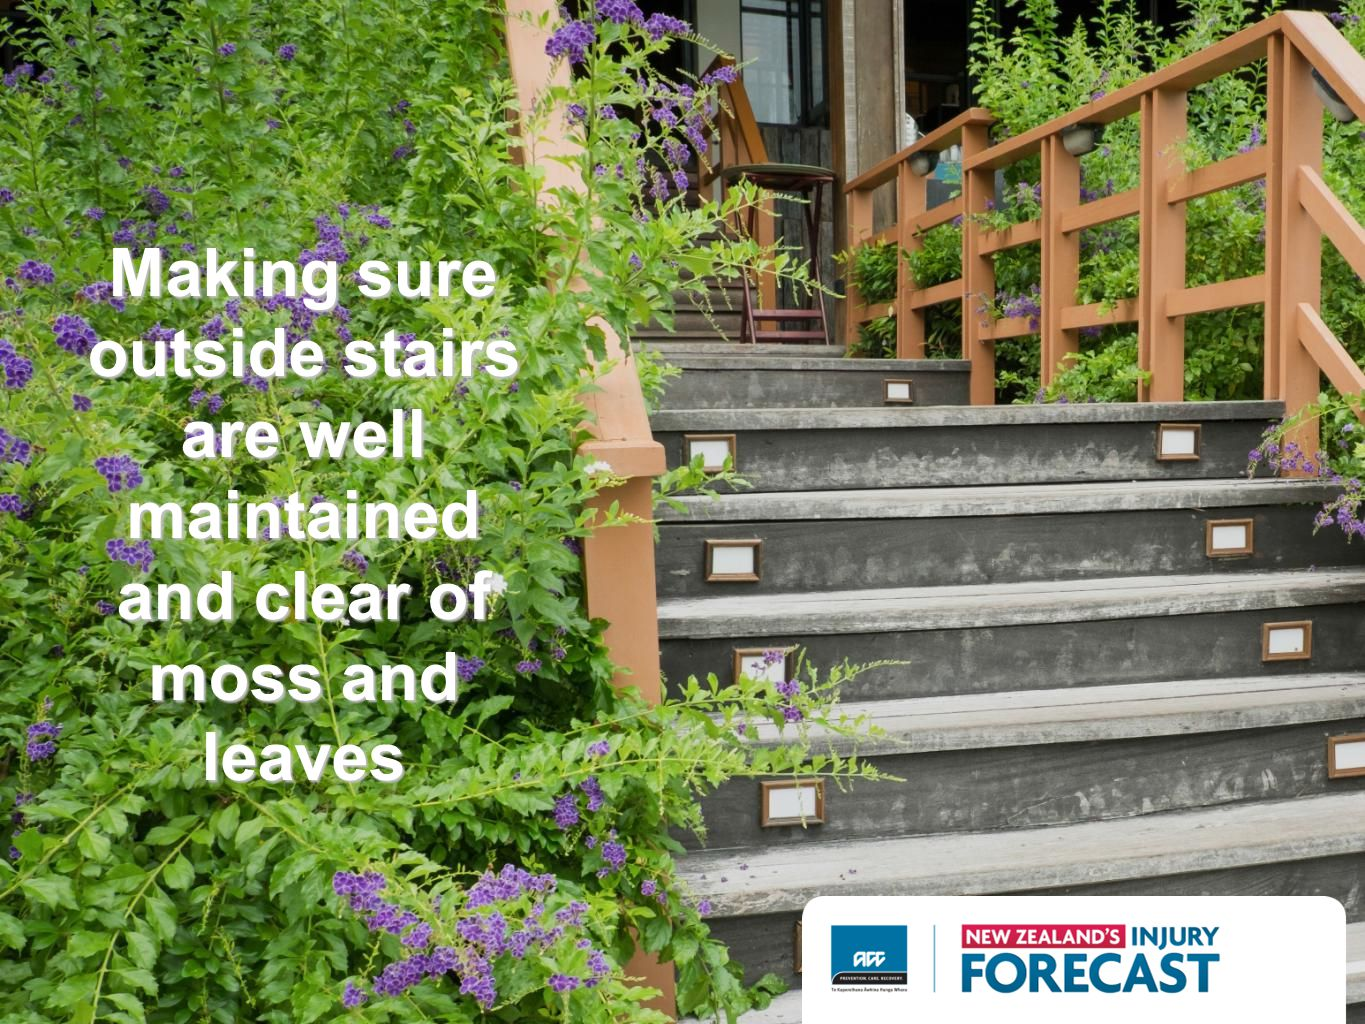 Making sure outside stairs are well maintained and clear of moss and leaves